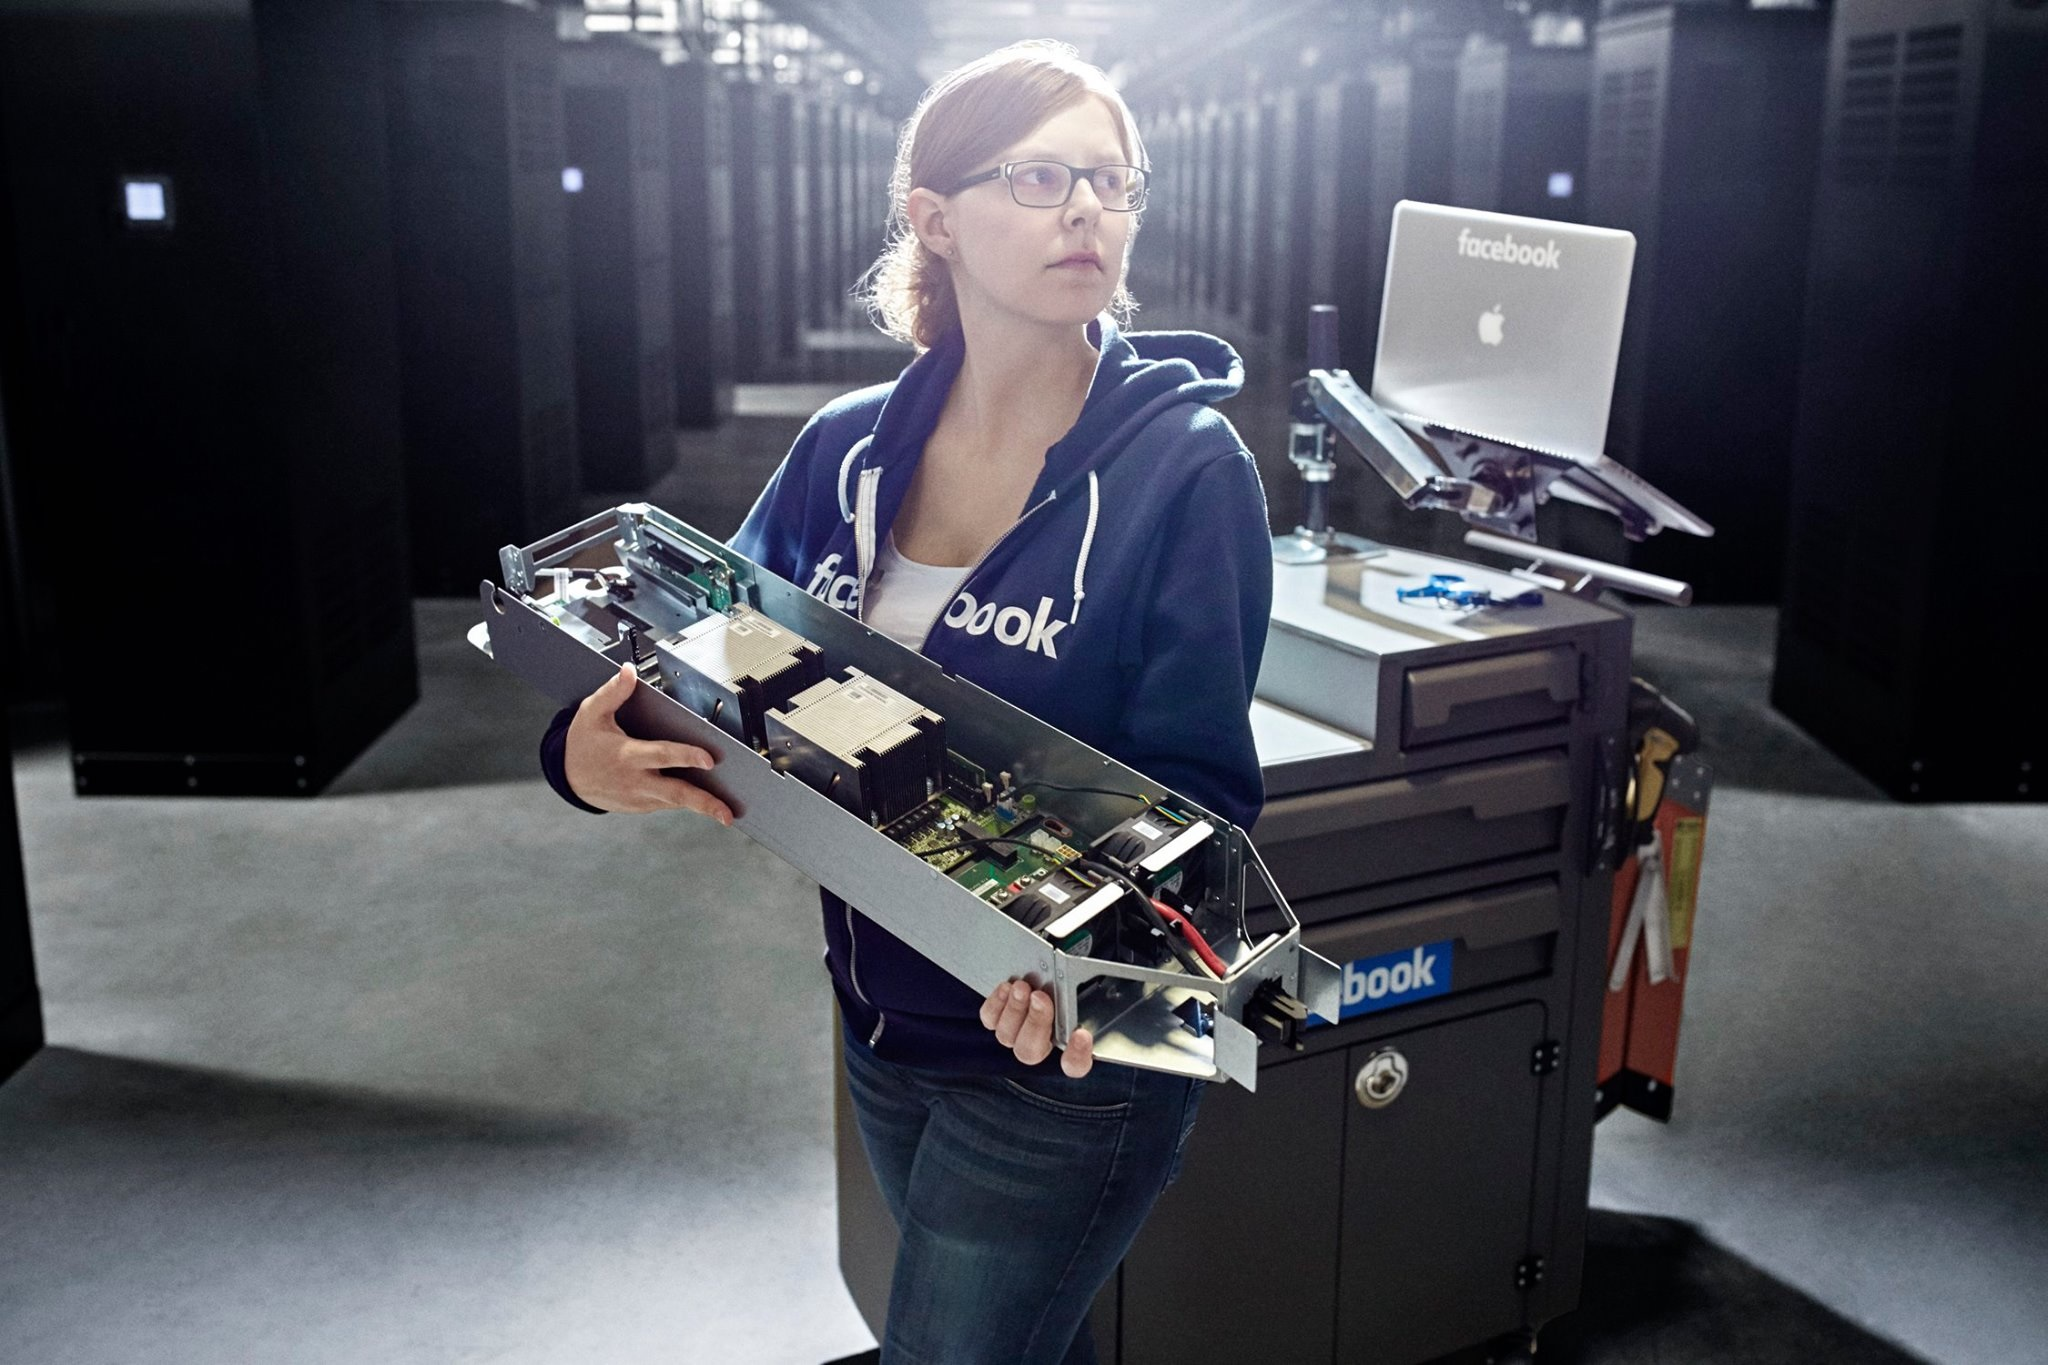 datacenter facebook